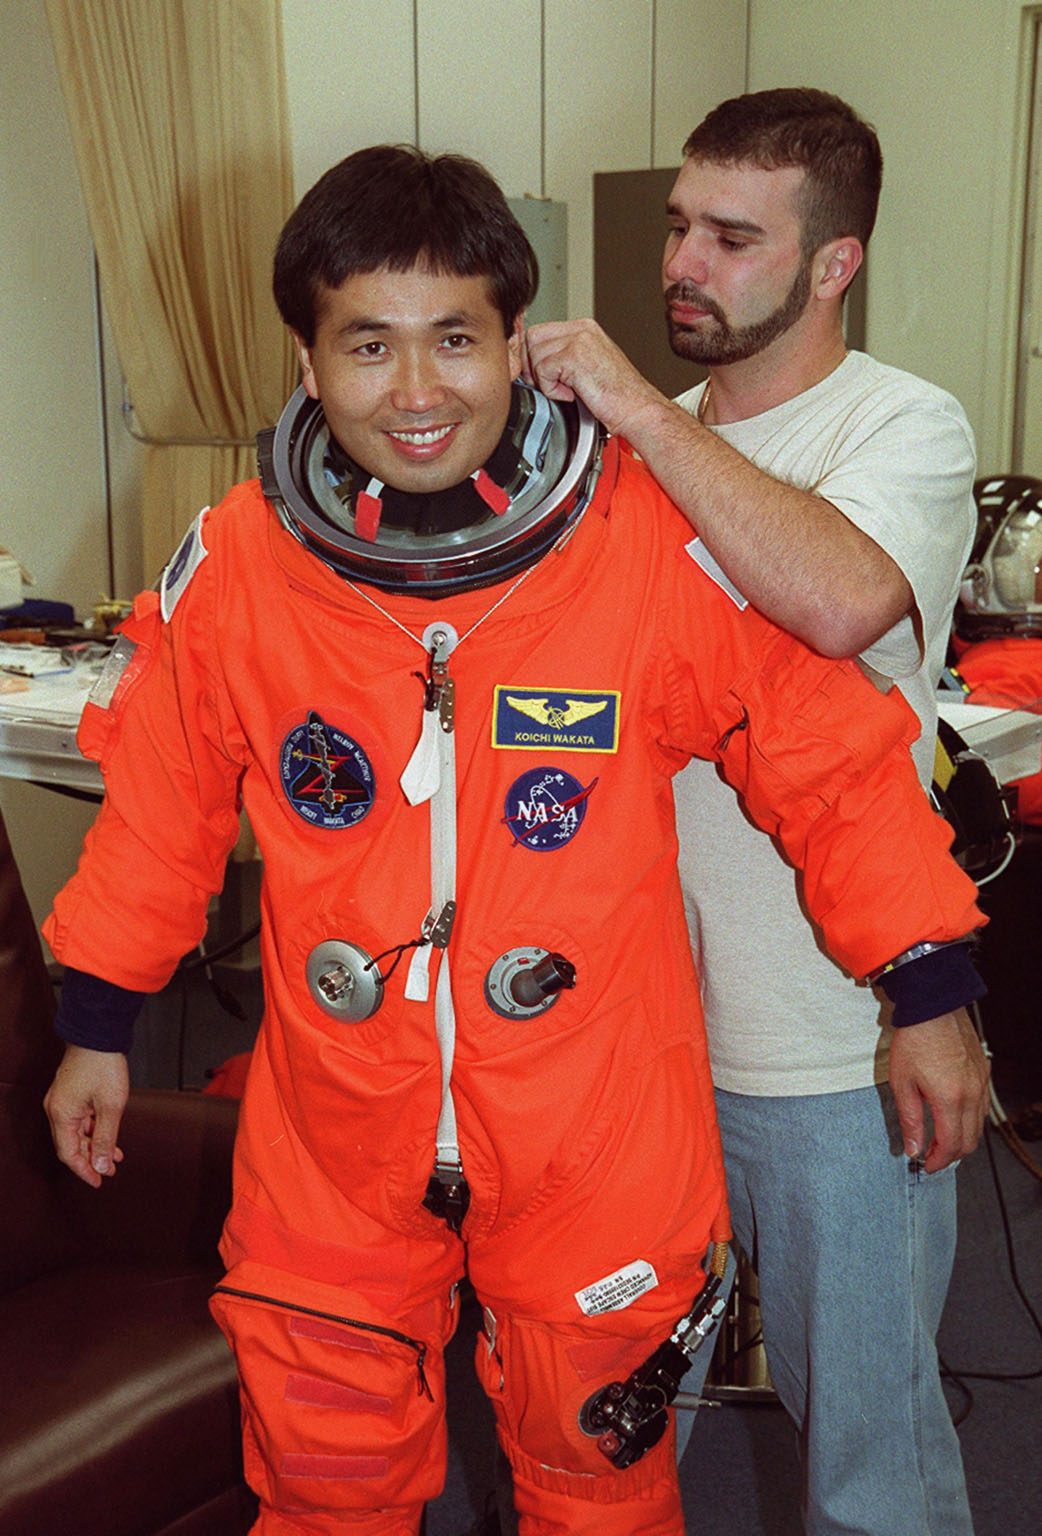 During pre-pack and fit check in the Operations and Checkout Building, STS-92 Mission Specialist Koichi Wakata of Japan gets an adjustment on his launch and entry suit. This mission is Wakata?s second Shuttle flight. He and the rest of the crew are at KSC for Terminal Countdown Demonstration Test activities. The TCDT provides emergency egress training, simulated countdown exercises and opportunities to inspect the mission payload. STS-92 is scheduled to launch Oct. 5 at 9:38 p.m. EDT from Launch Pad 39A on the fifth flight to the International Space Station. It will carry two elements of the Space Station, the Integrated Truss Structure Z1 and the third Pressurized Mating Adapter. The mission is also the 100th flight in the Shuttle program